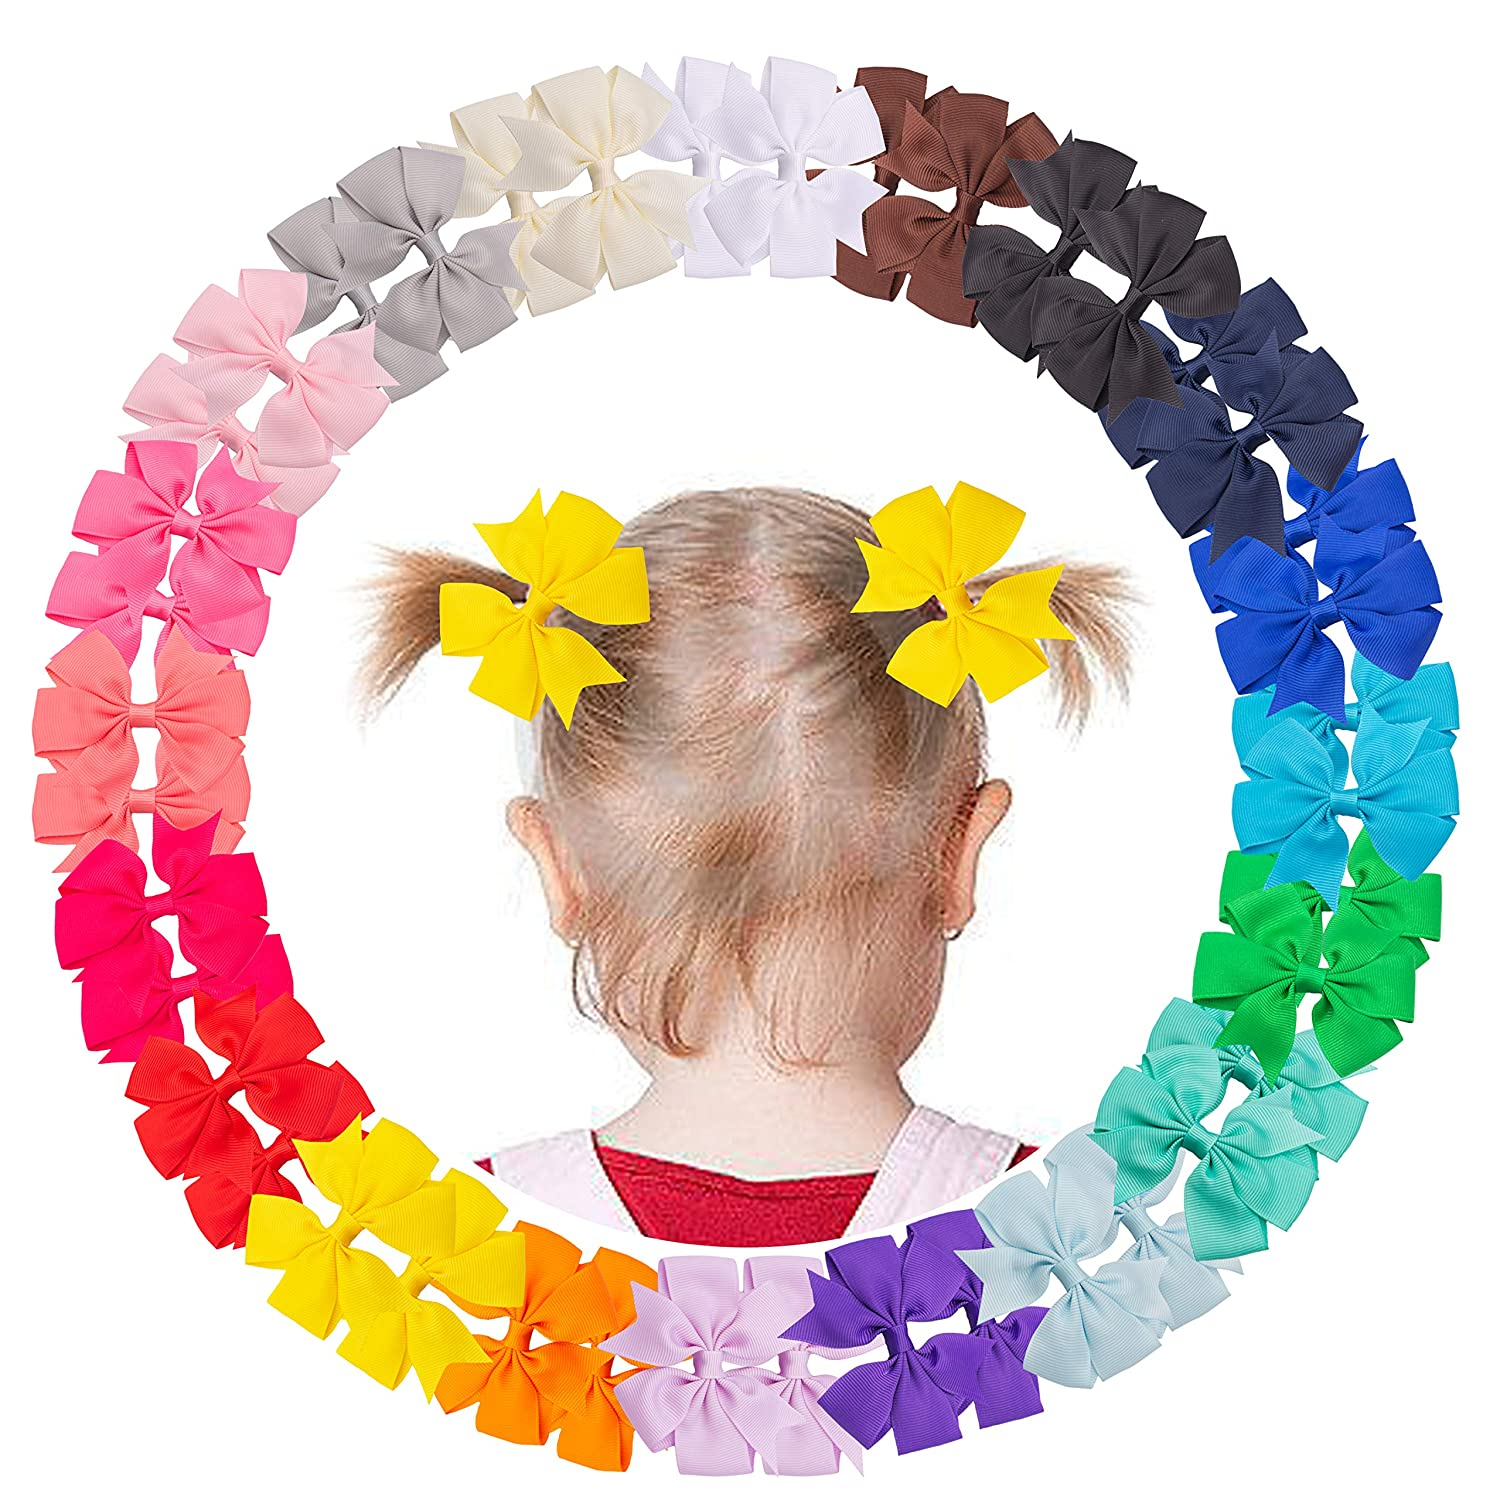 VINOBOW 40Piece Hair Bows with Alligator Clips Baby Hair Clips For Toddlers Girls Baby Hair Accessories 3Inch